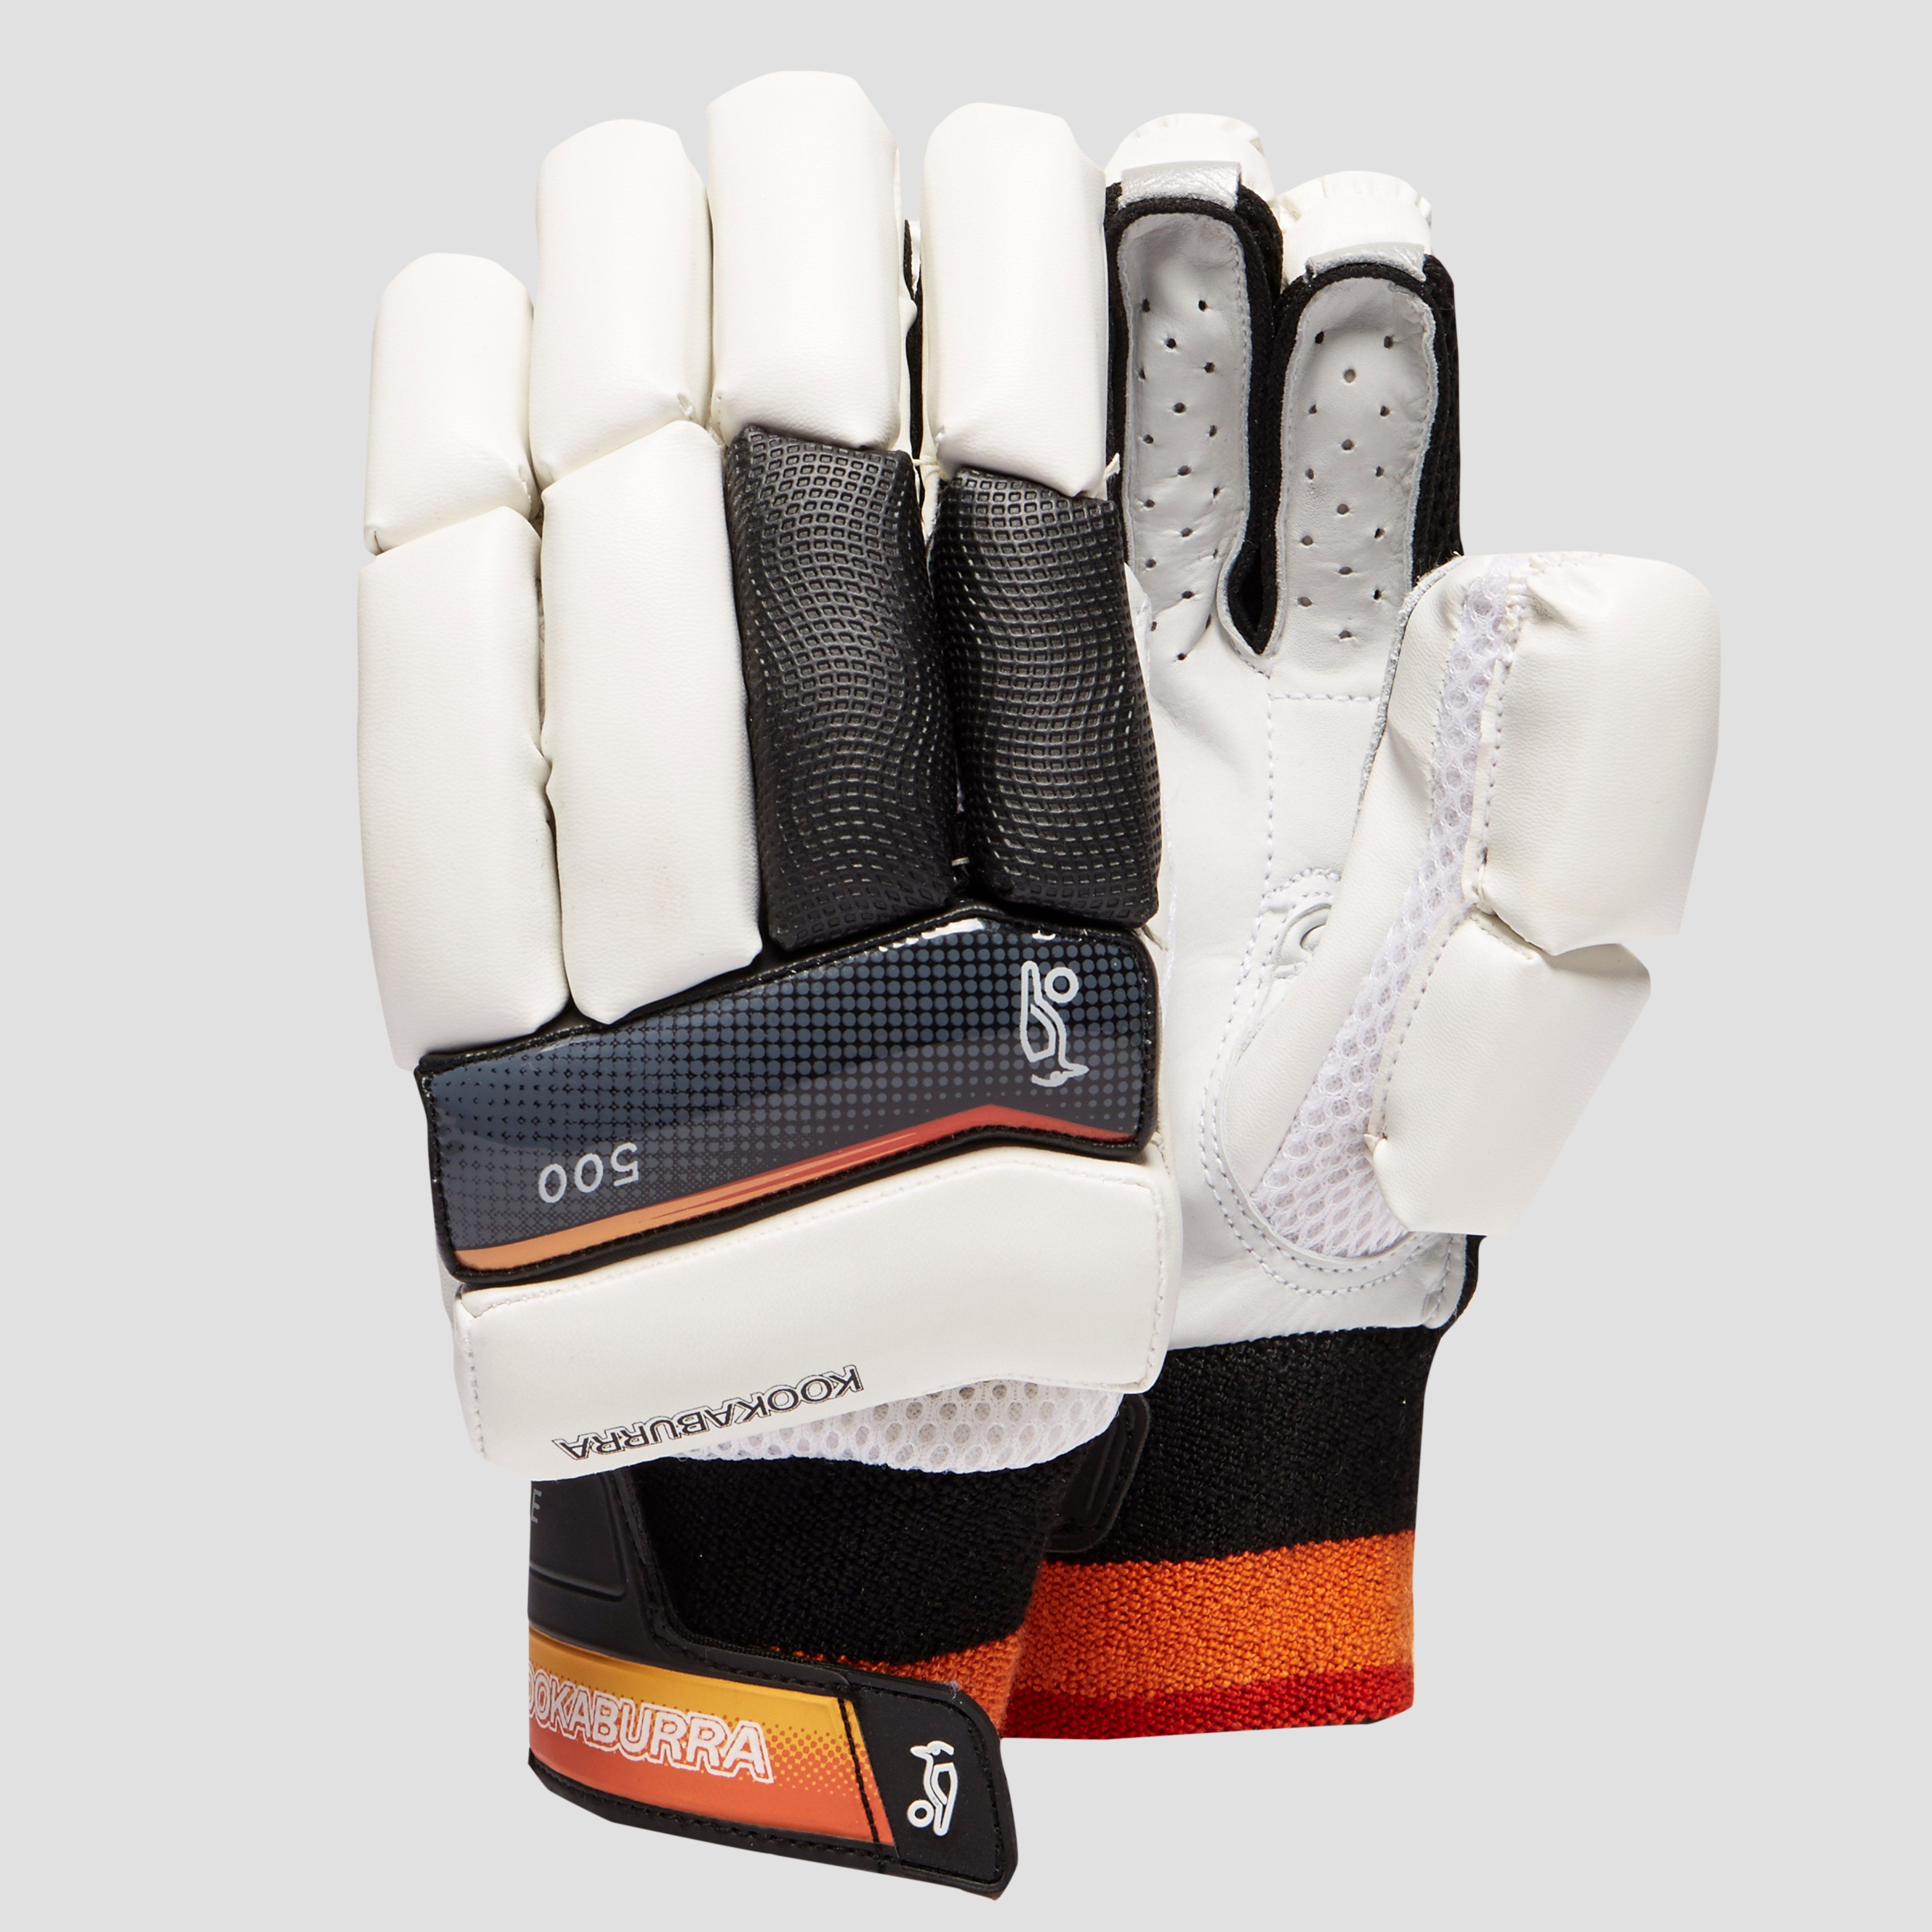 Kookaburra Blaze 500 Junior Cricket Batting Gloves